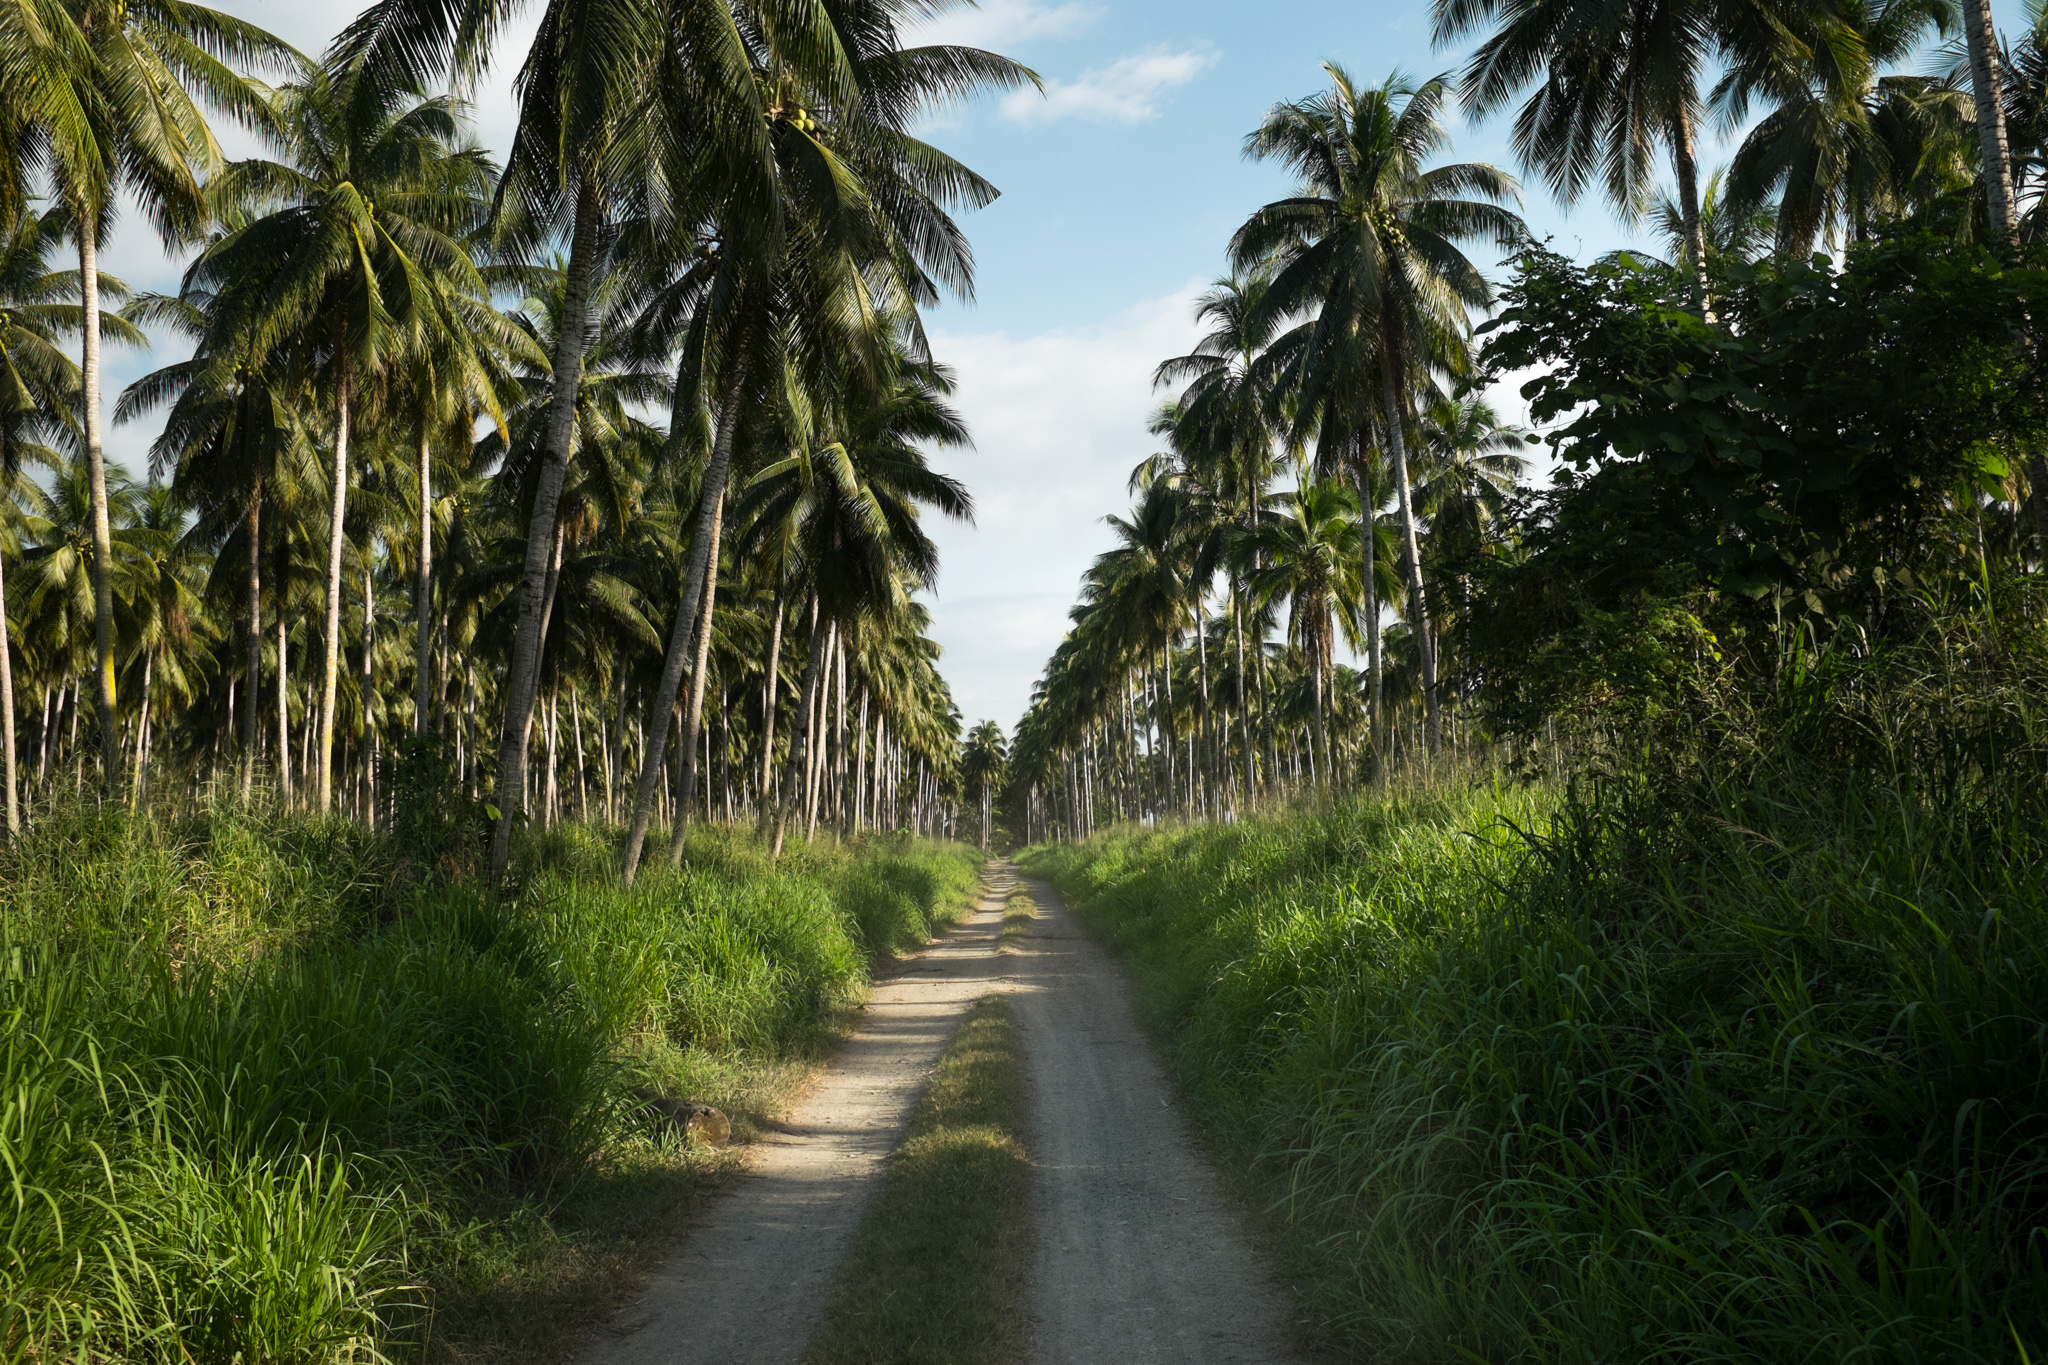 3019-philippines_tropical-sights.jpg